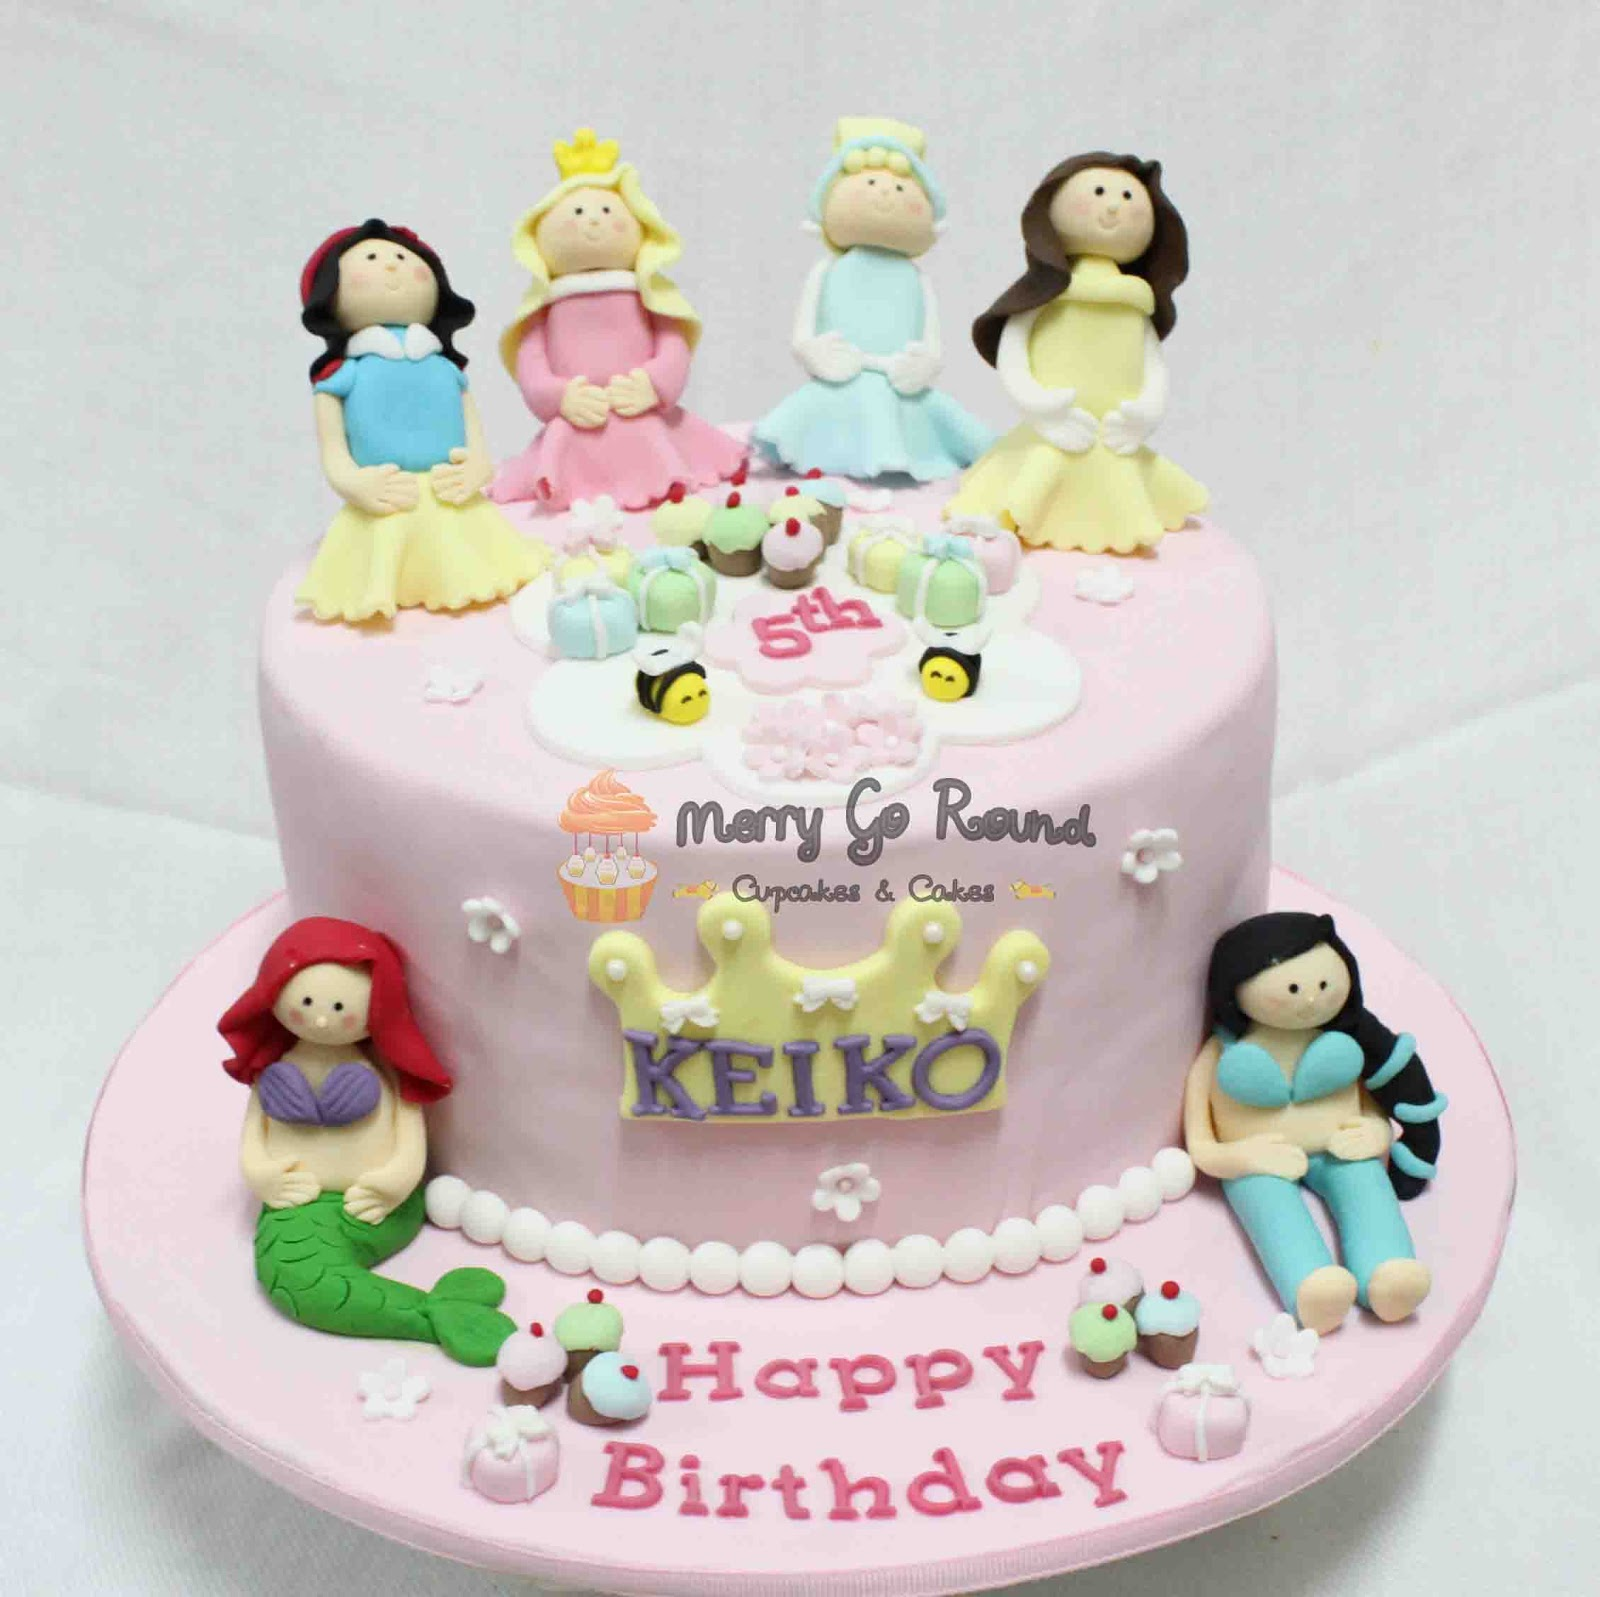 Merry Go Round Cupcakes Cakes Disney Princess birthday Cake